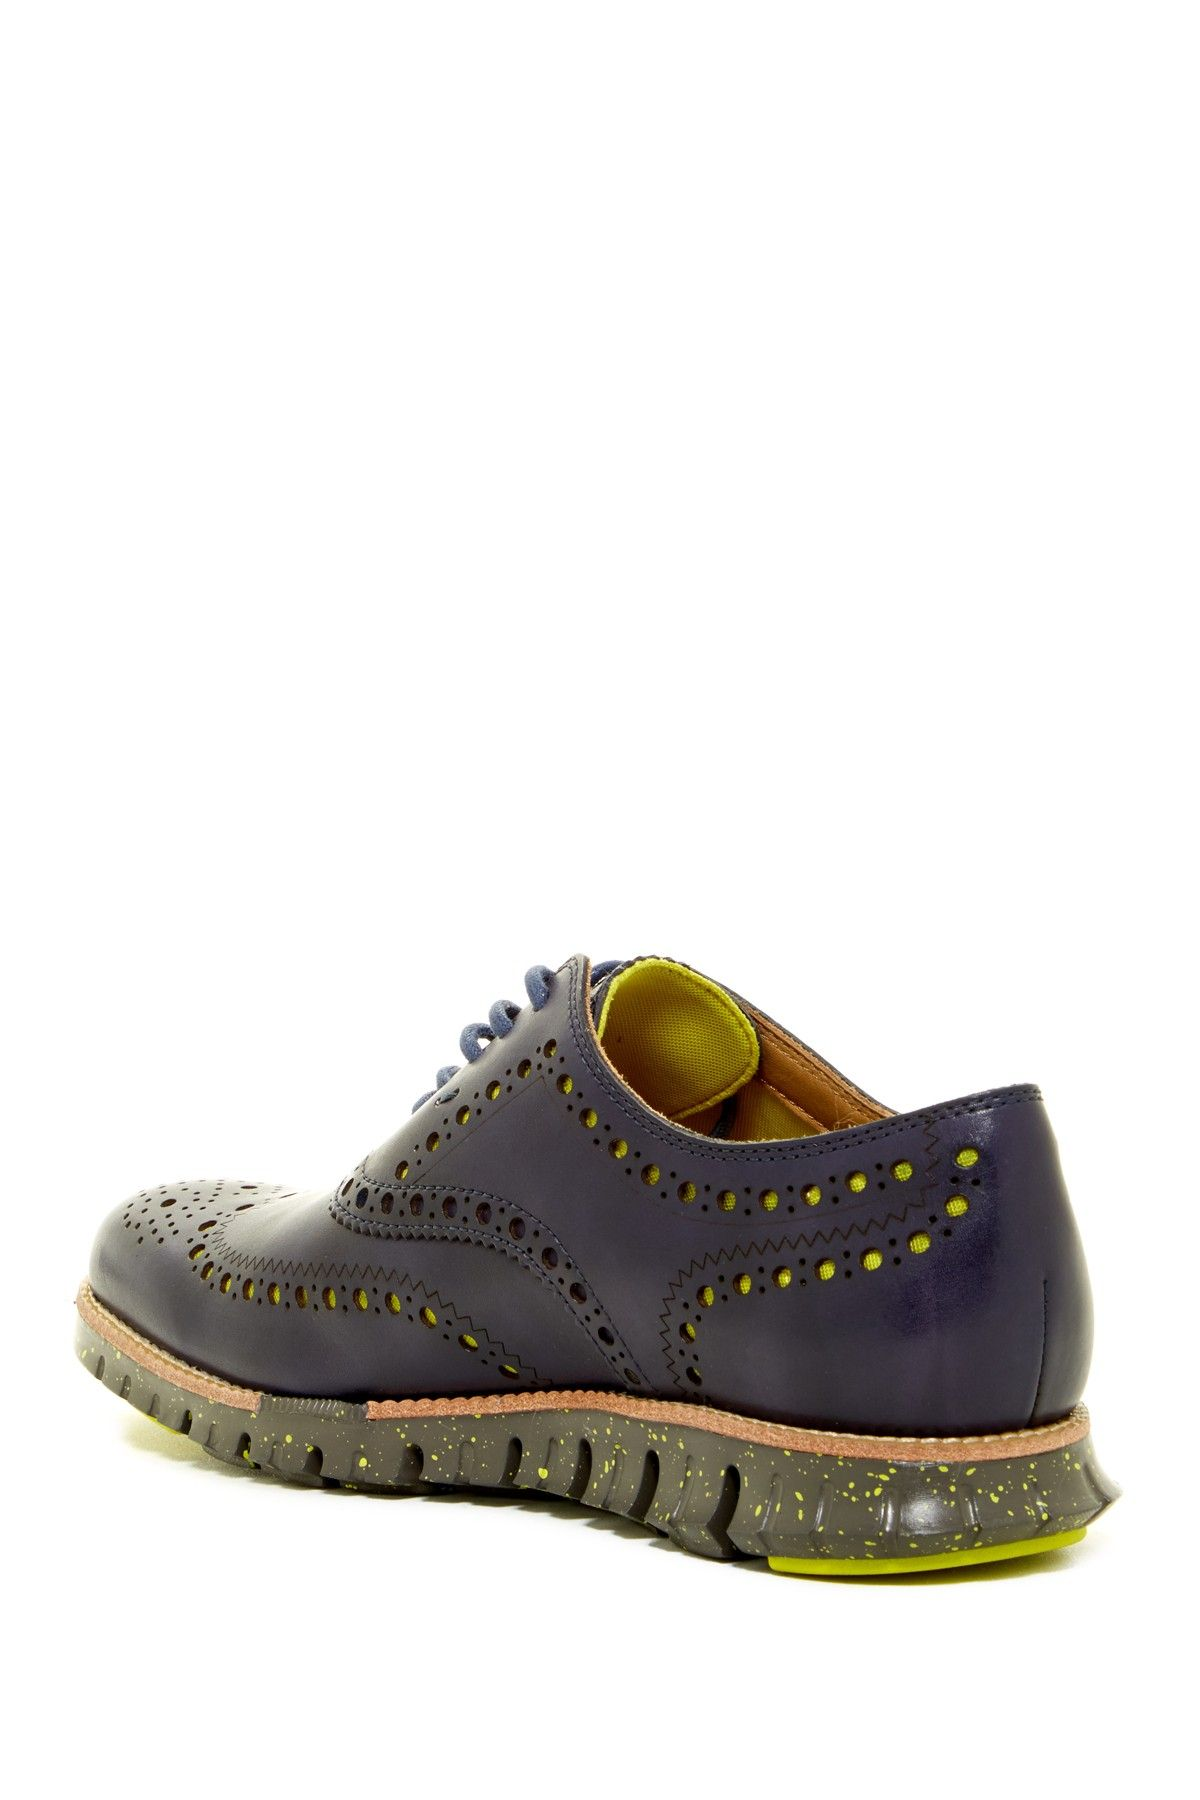 cole haan shoes red laces licorice all sorts 718228